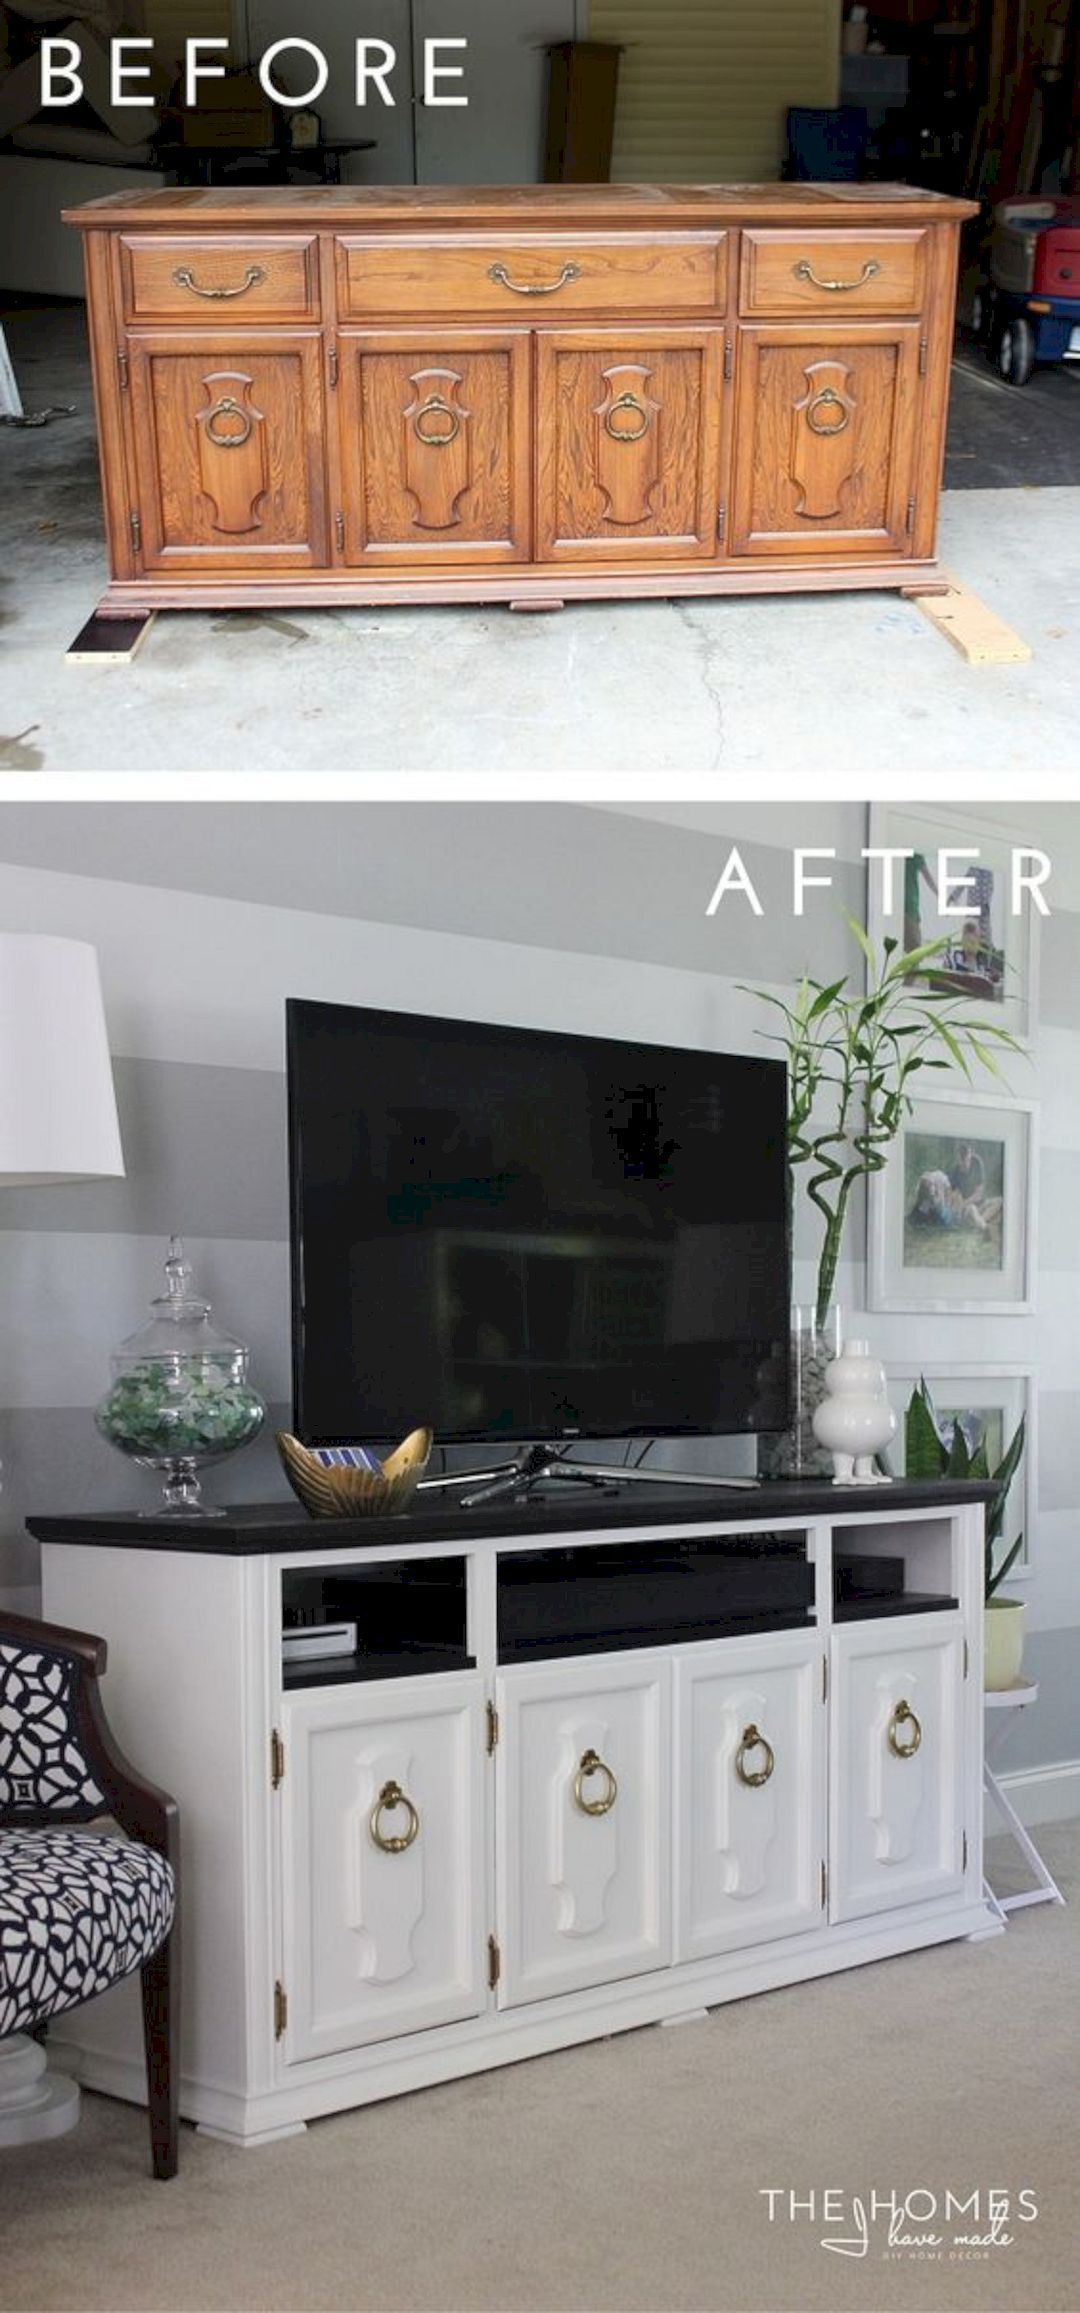 15 amazing refurbished furniture ideas you should try out at home rh pinterest co uk